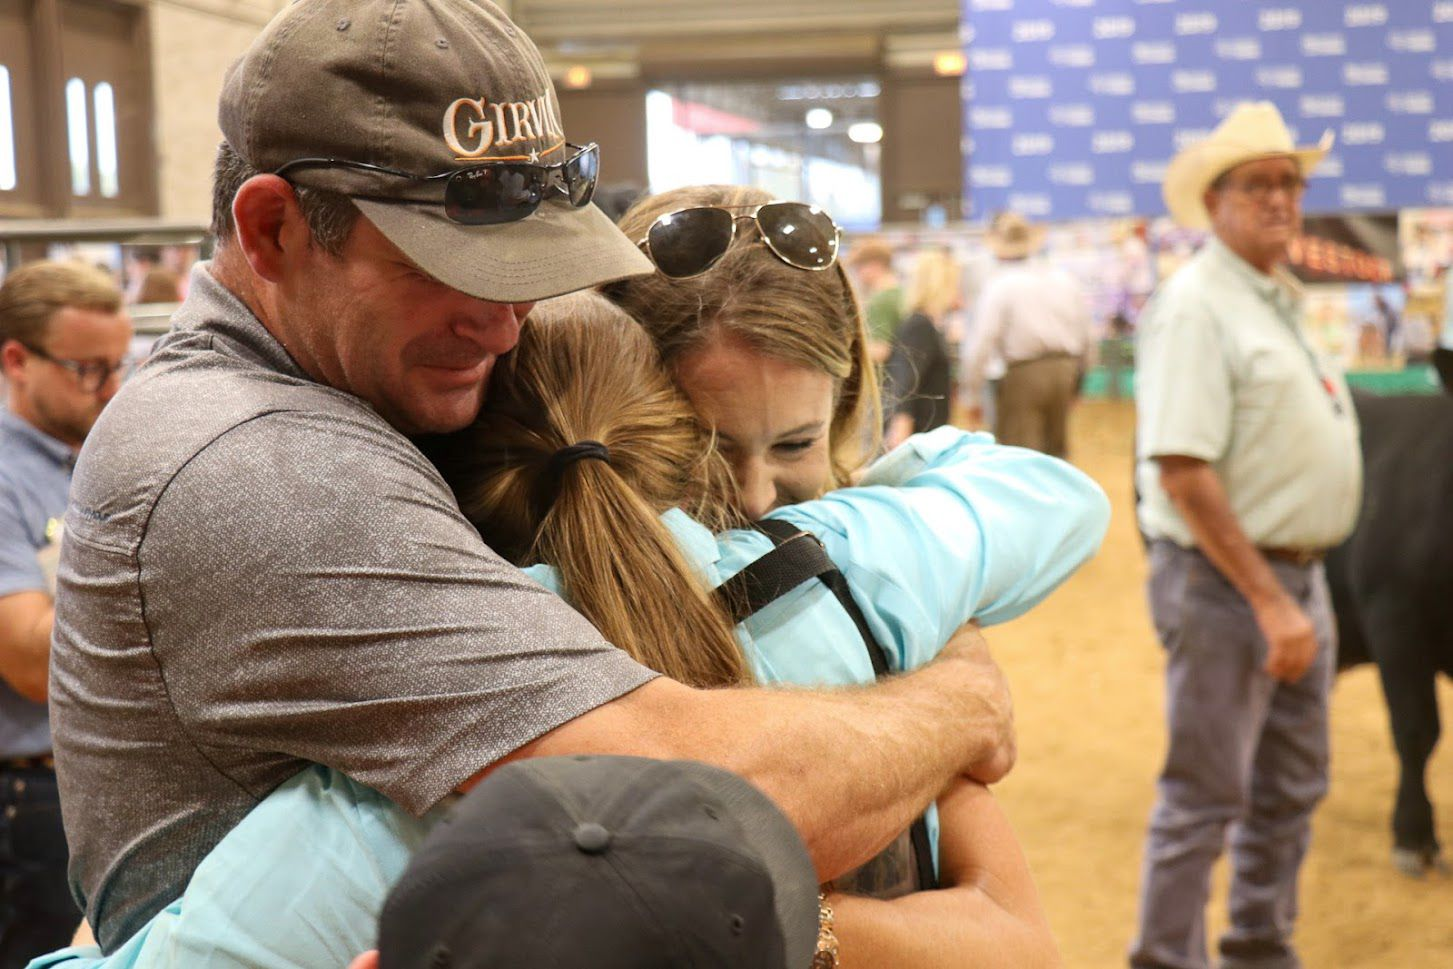 Each year, the State Fair awards more than 120 livestock scholarships to promising students with an eye on pushing the bounds of livestock and agriculture technology.